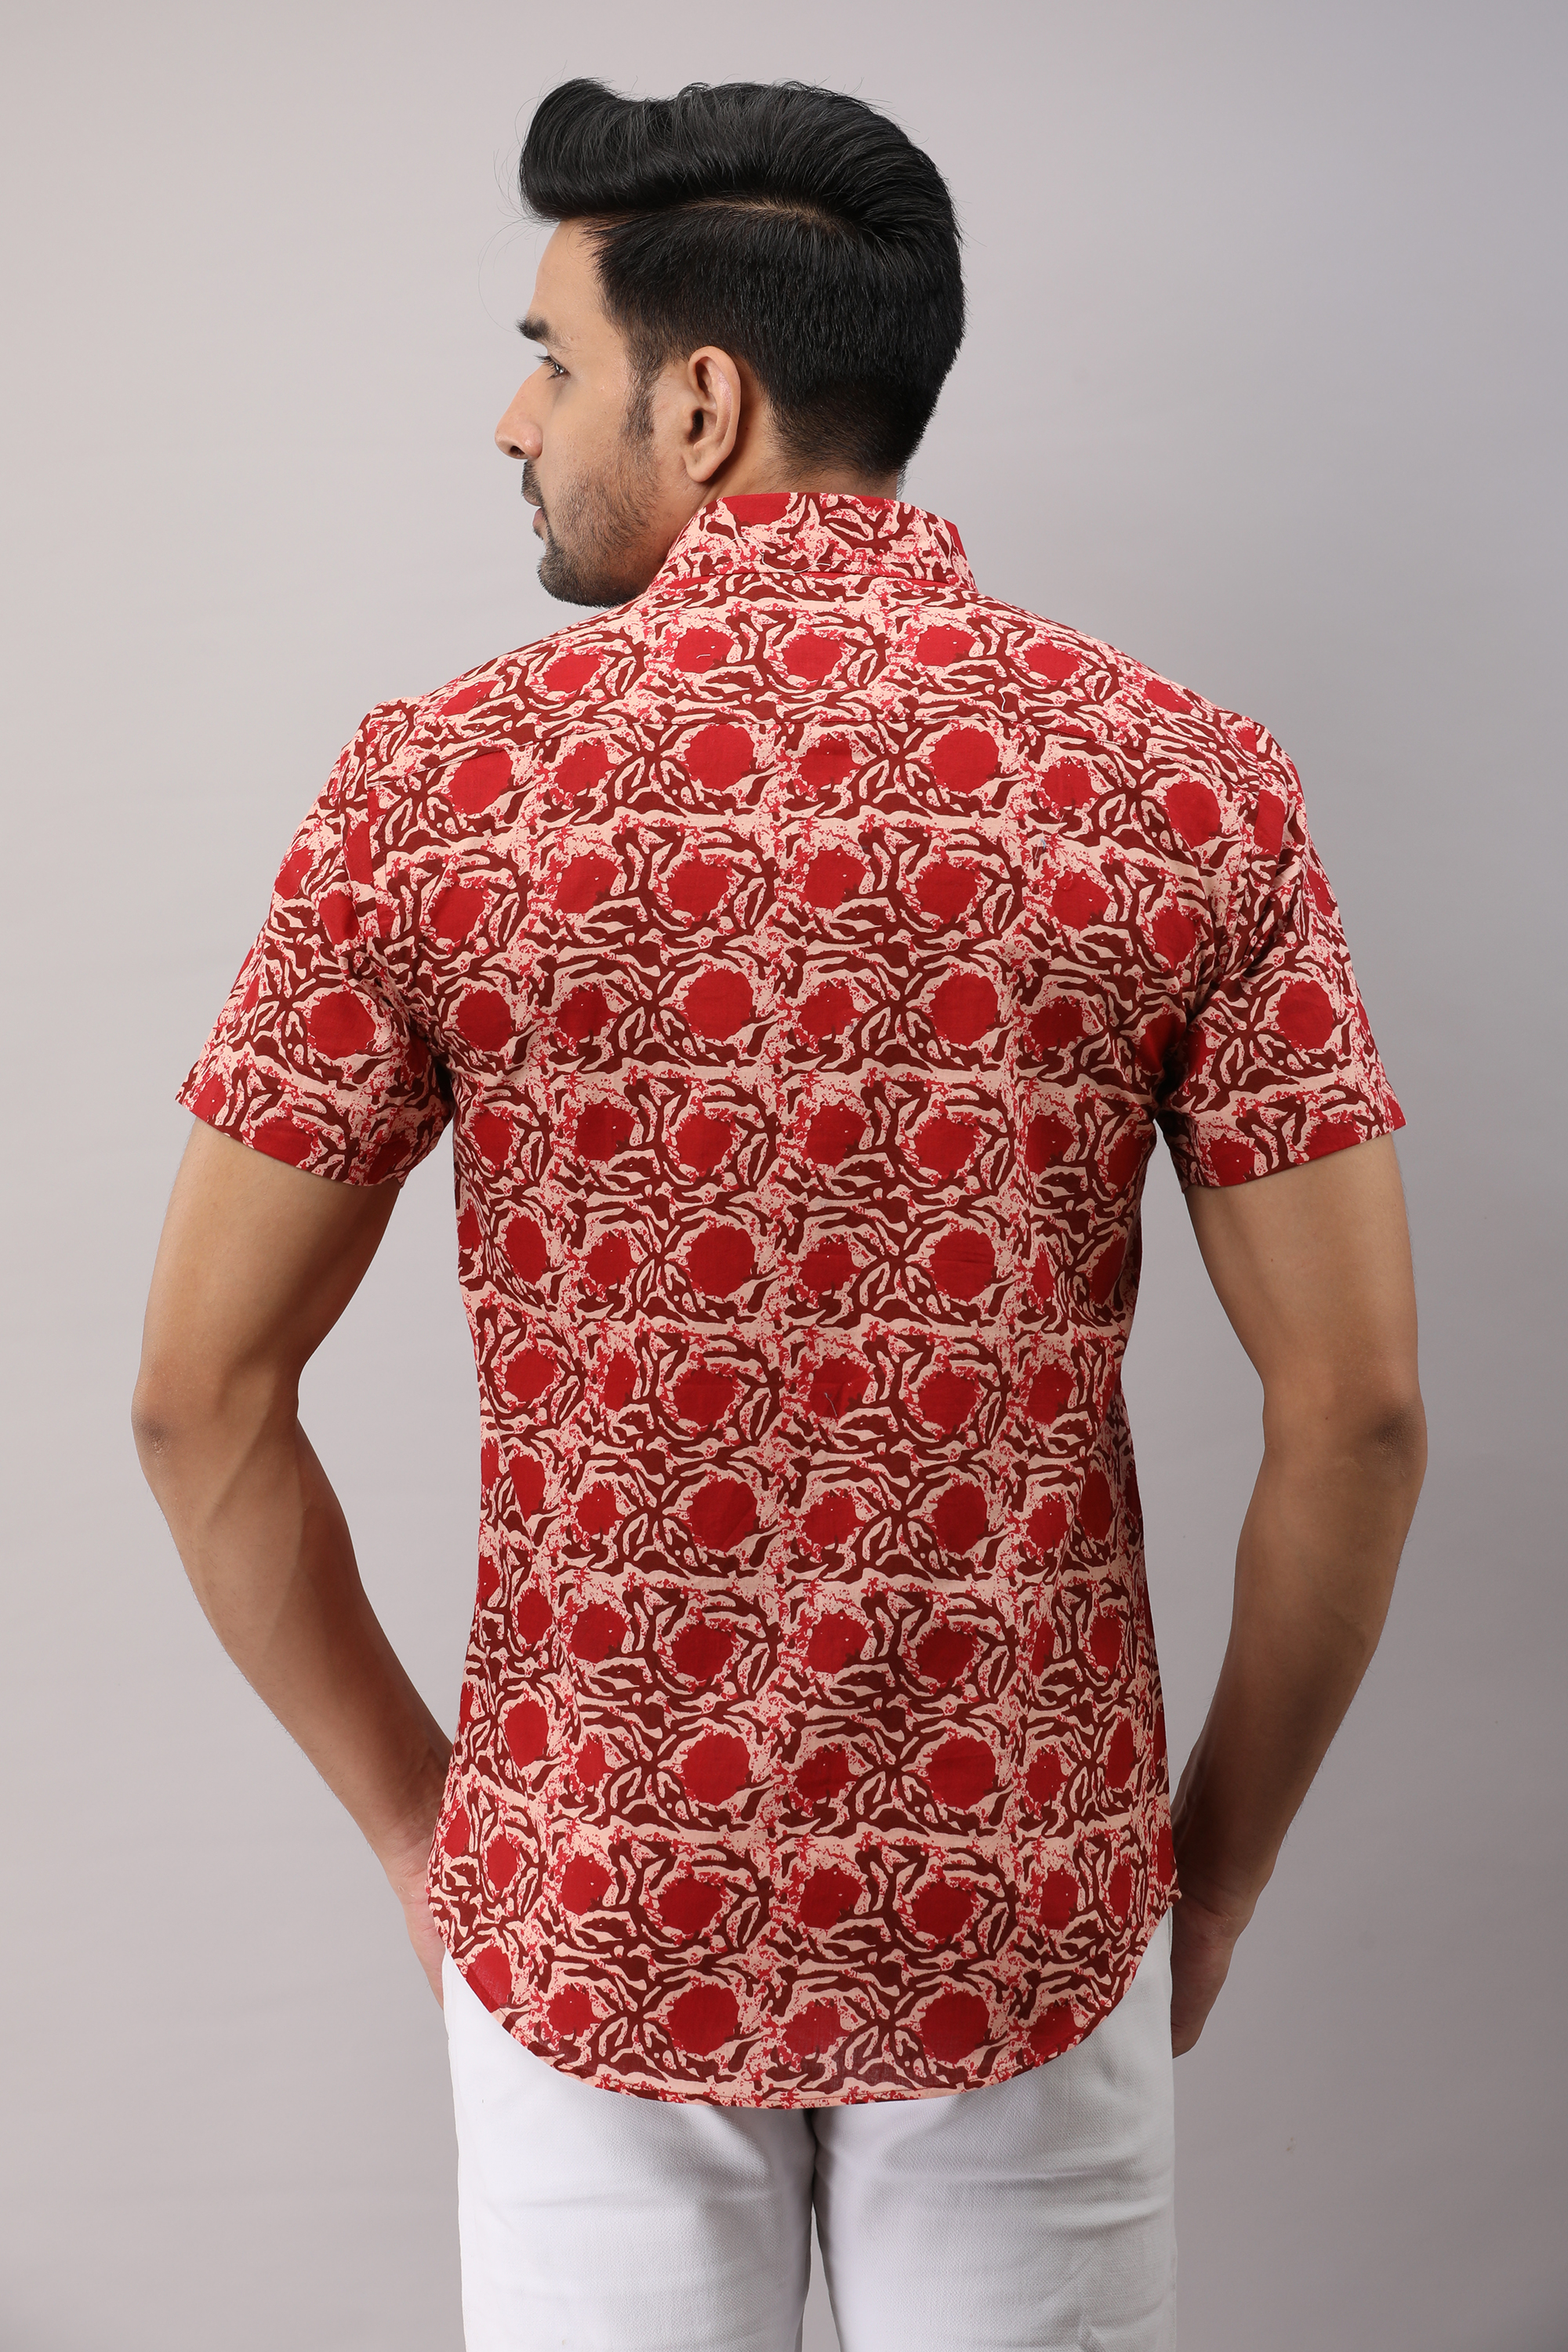 FrionKandy Cotton Floral Casual Red Regular Shirt For Men - M